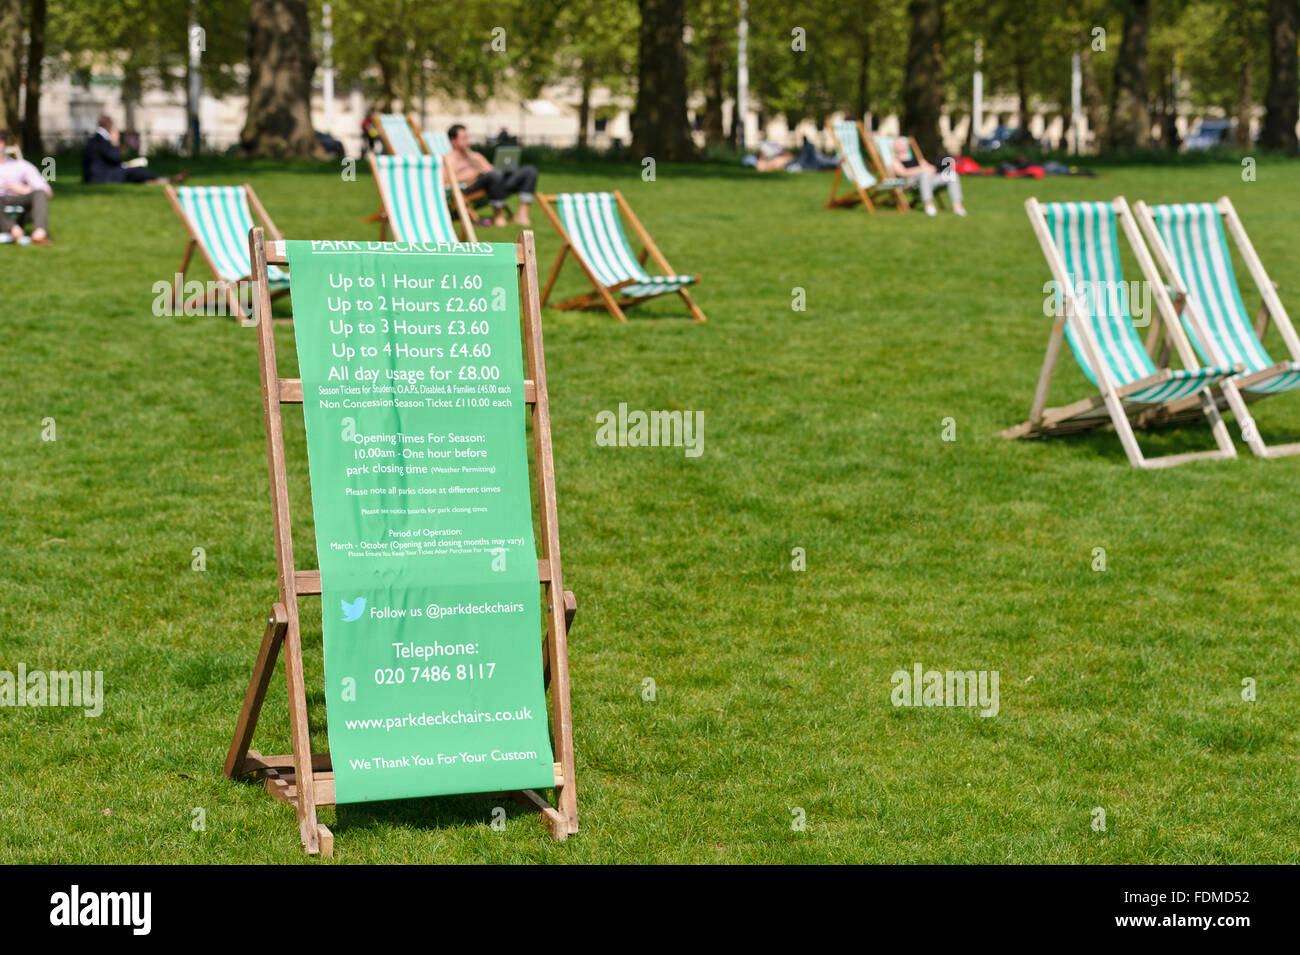 Display of deck chair charges in the London Parks, United Kingdom. - Stock Image